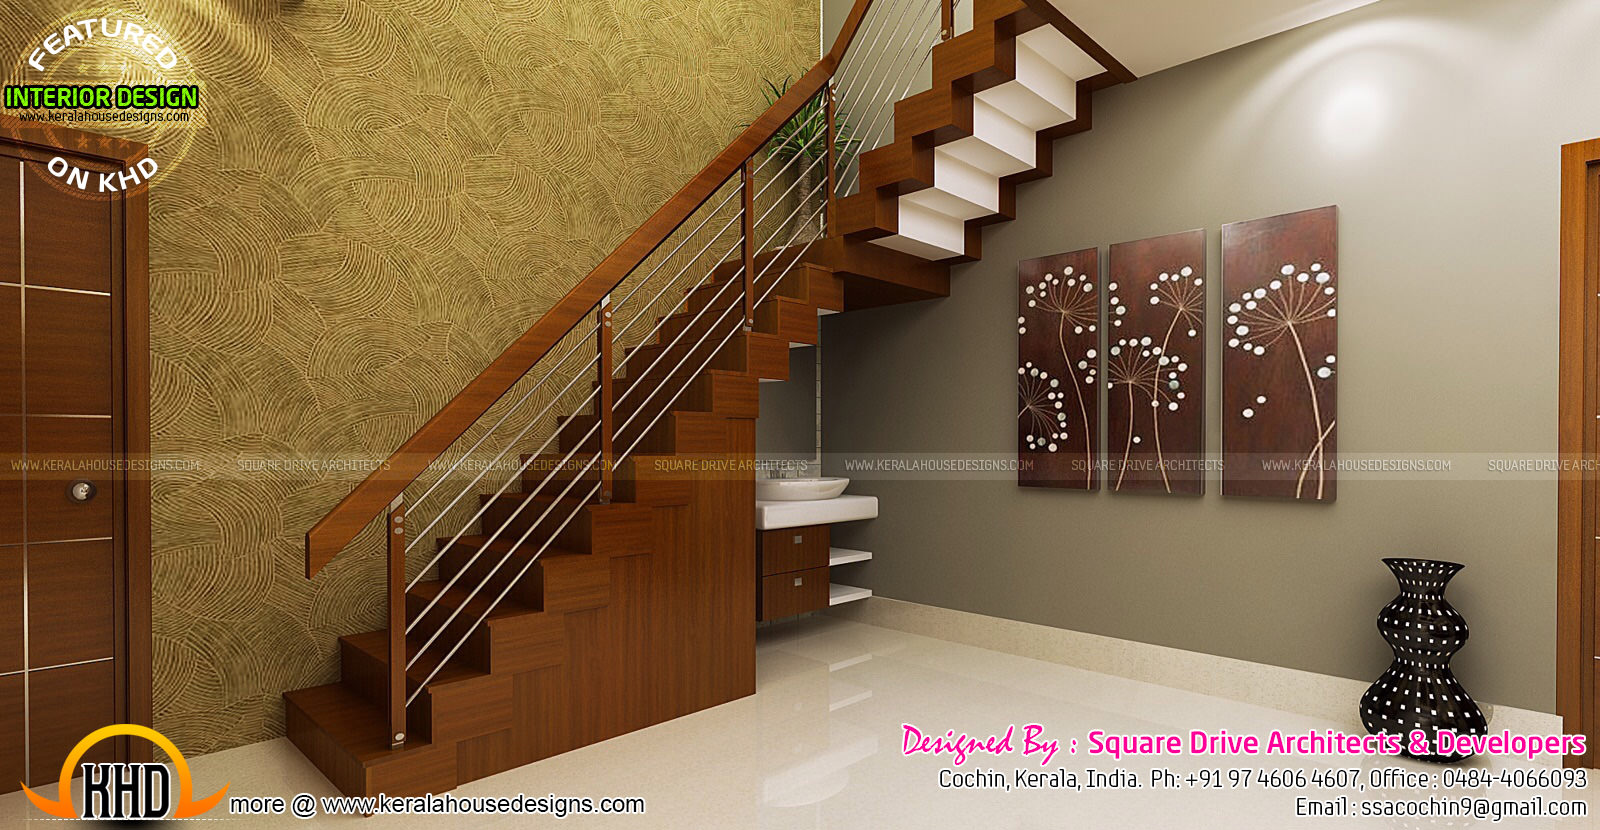 Stair area, Upper living, Bedroom interiors - Kerala home ...